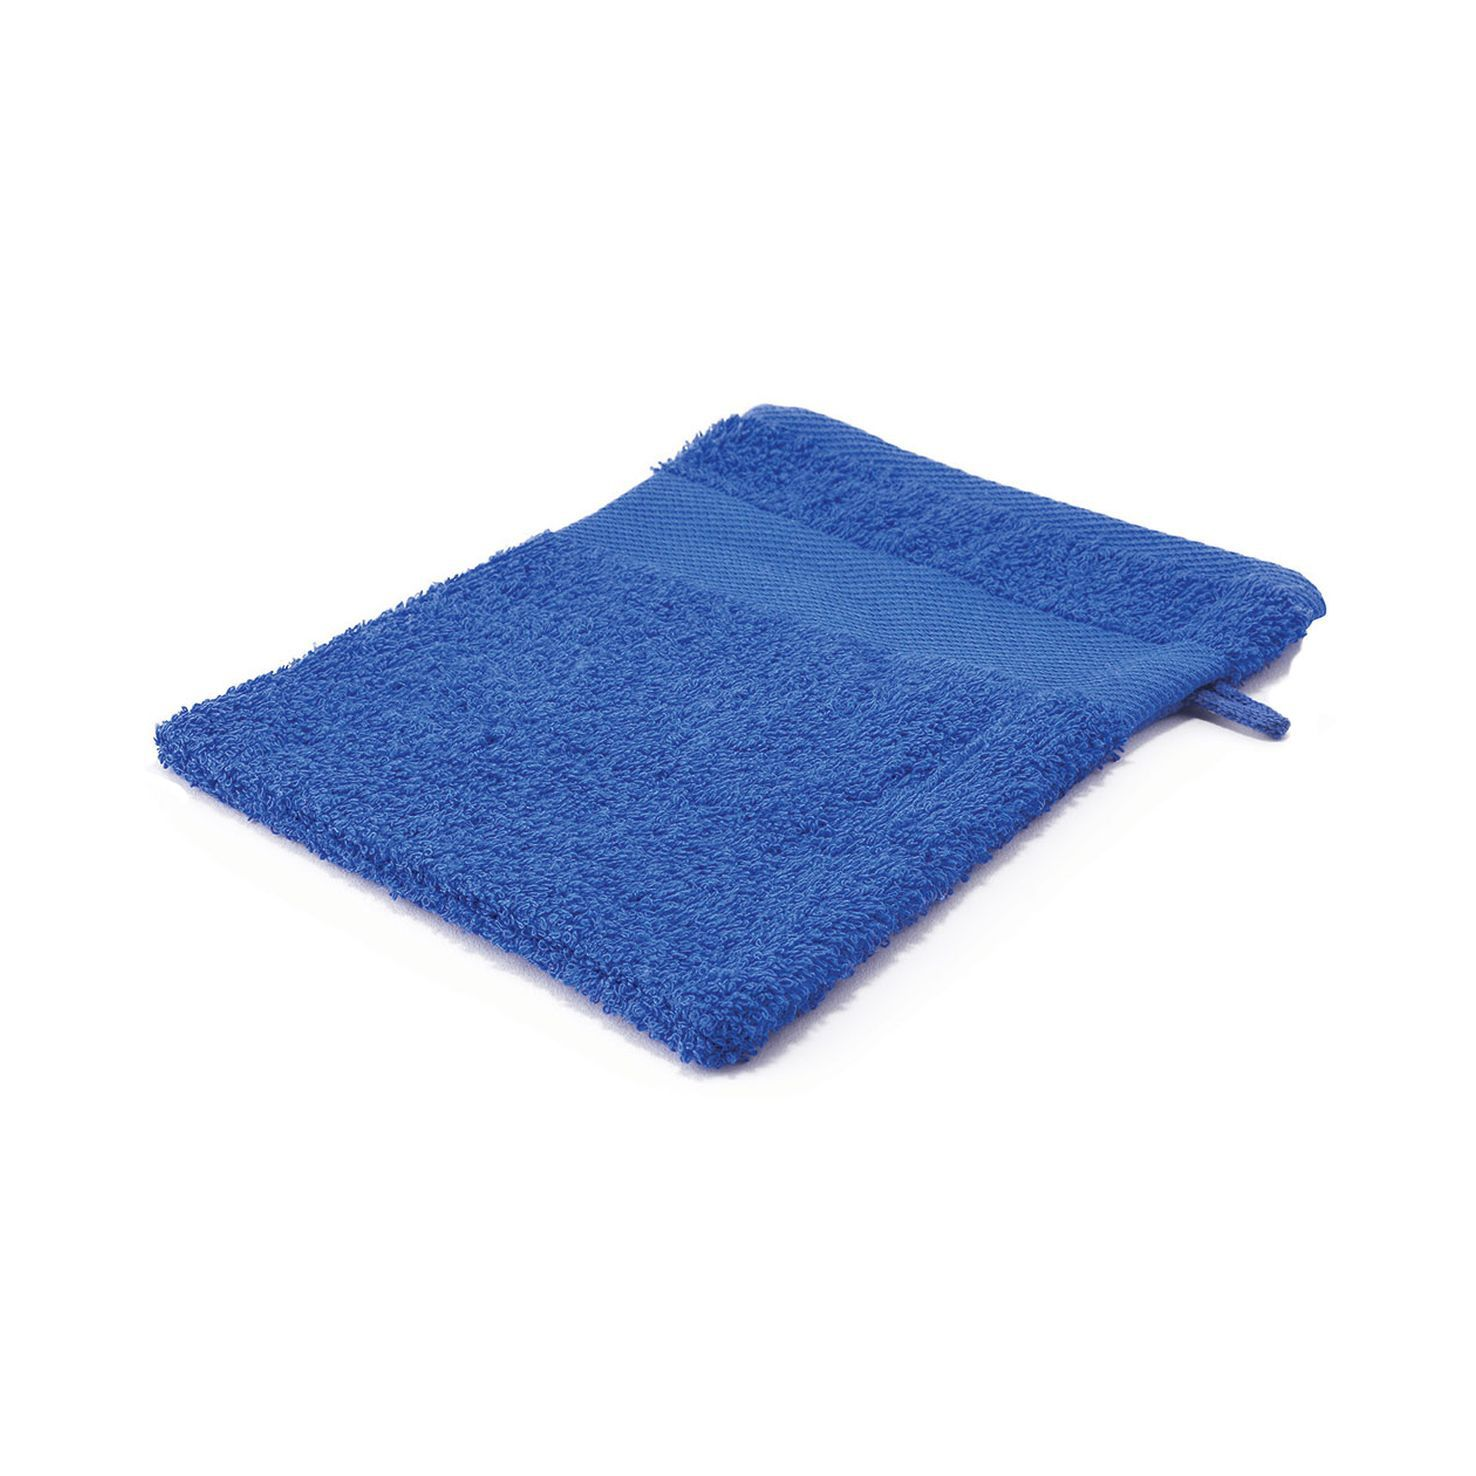 Blauwe Washandjes borduren | 450 grams